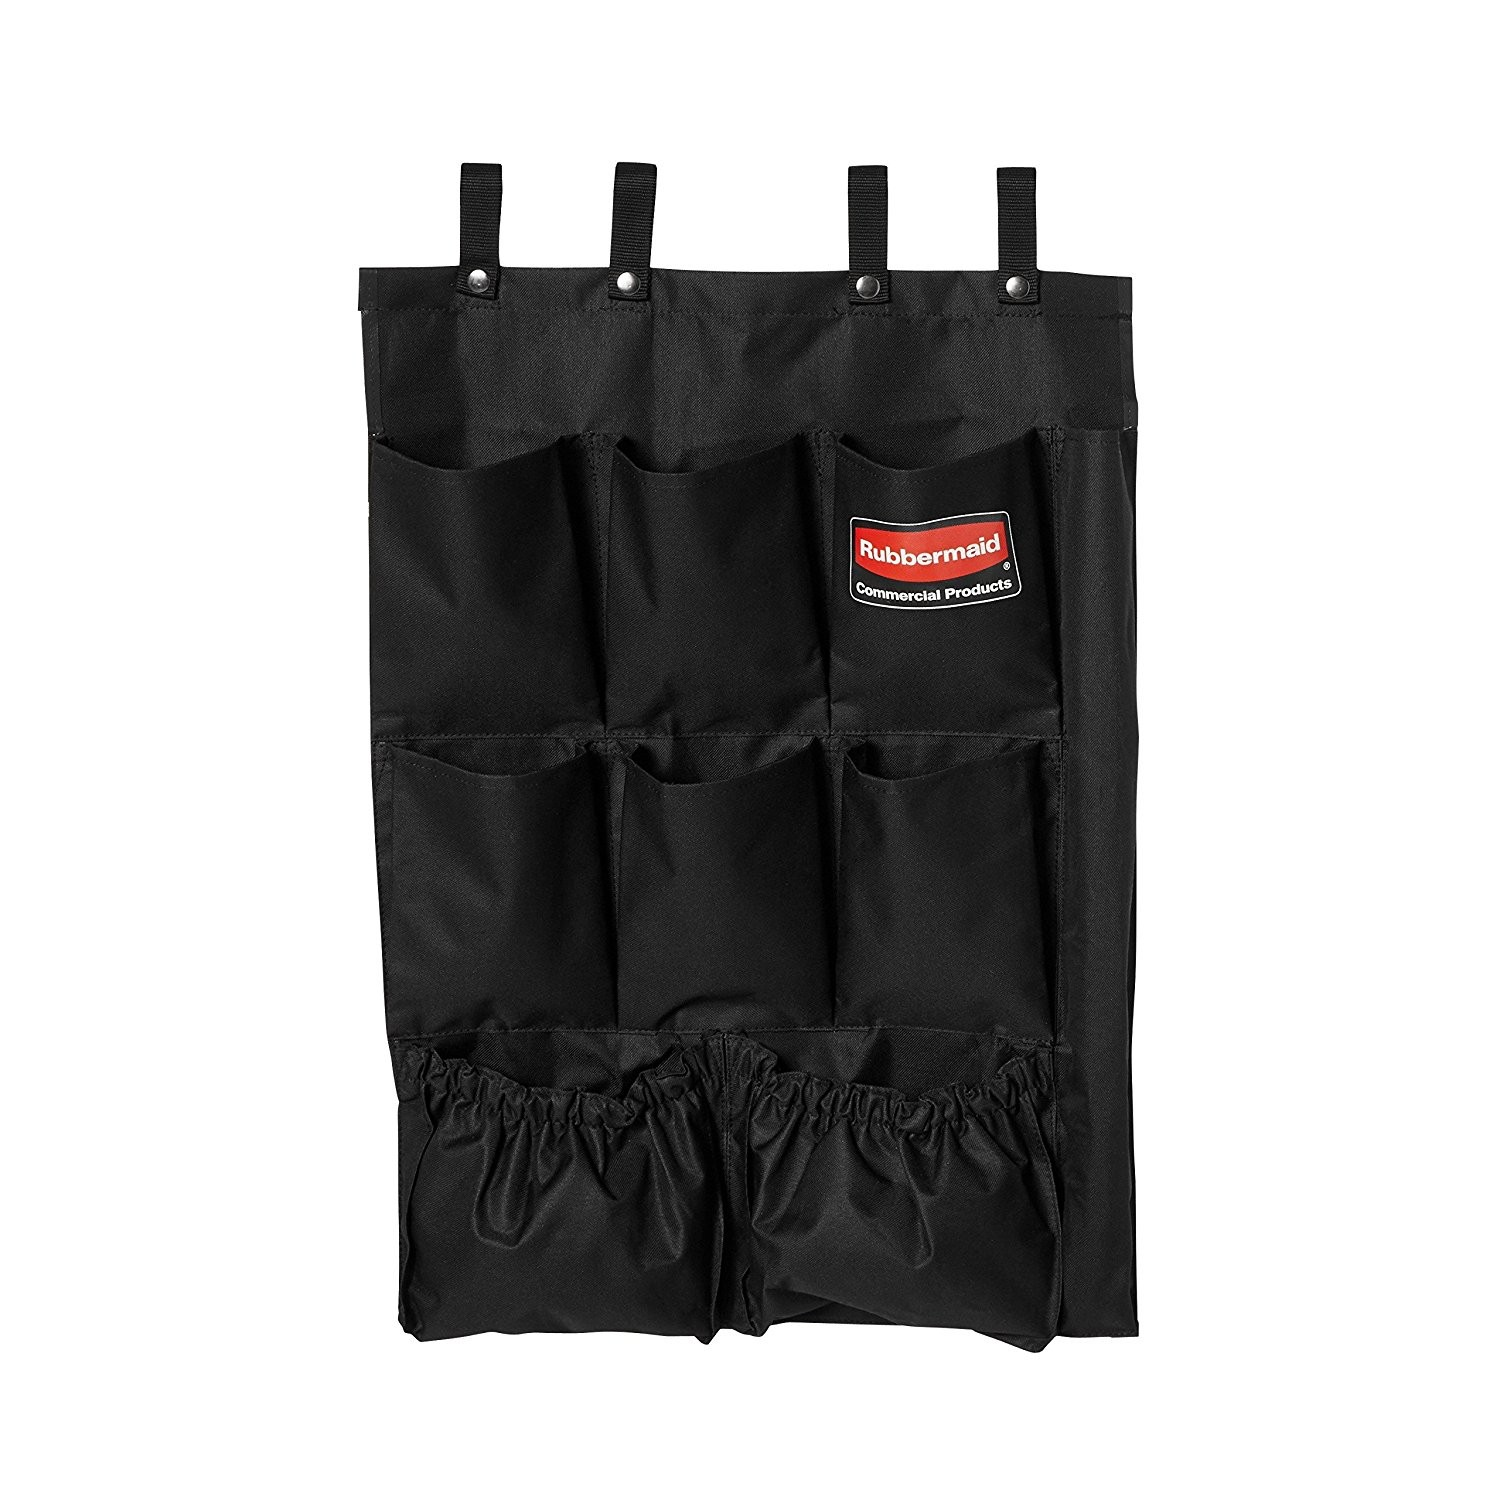 Rubbermaid 9T90 Janitor Cleaning Cart Fabric 9-Pocket Organizer - 6/Case